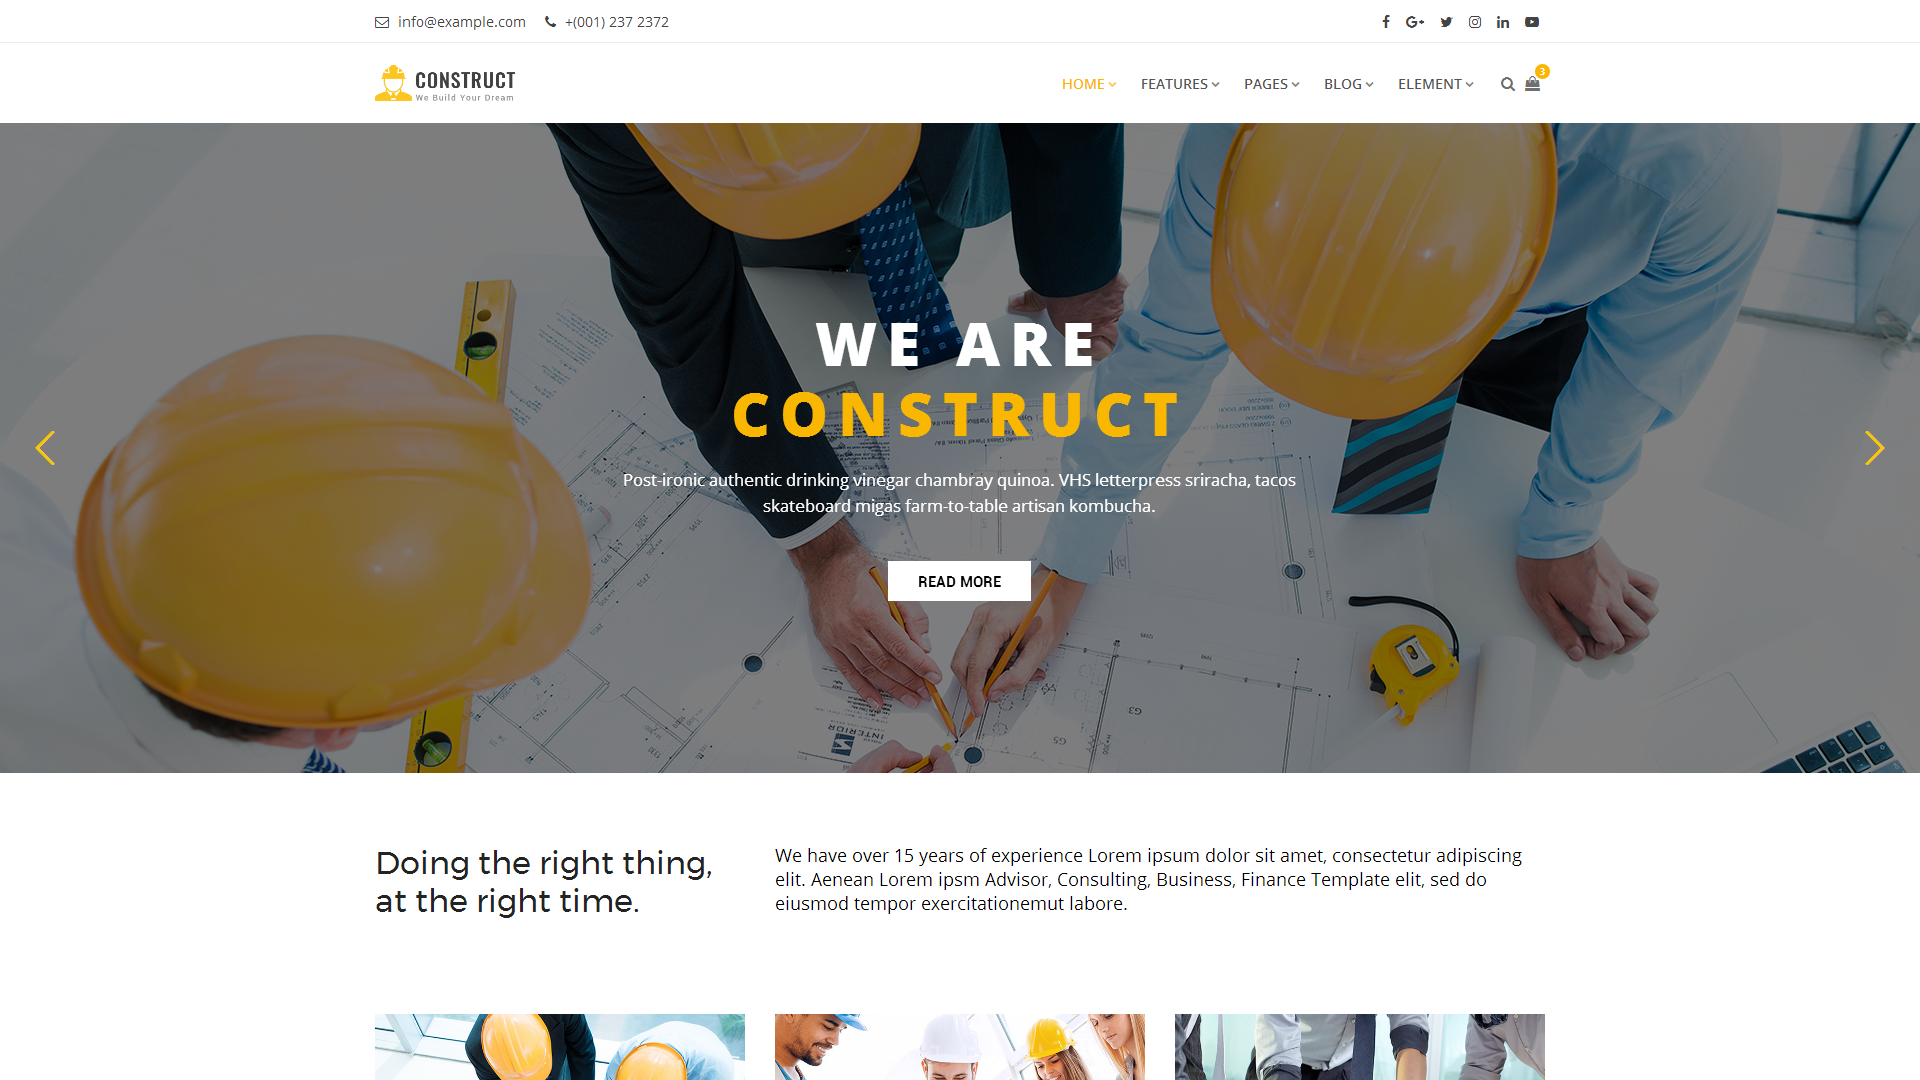 Construct : Construction, Building & Maintenance Website Template #68878